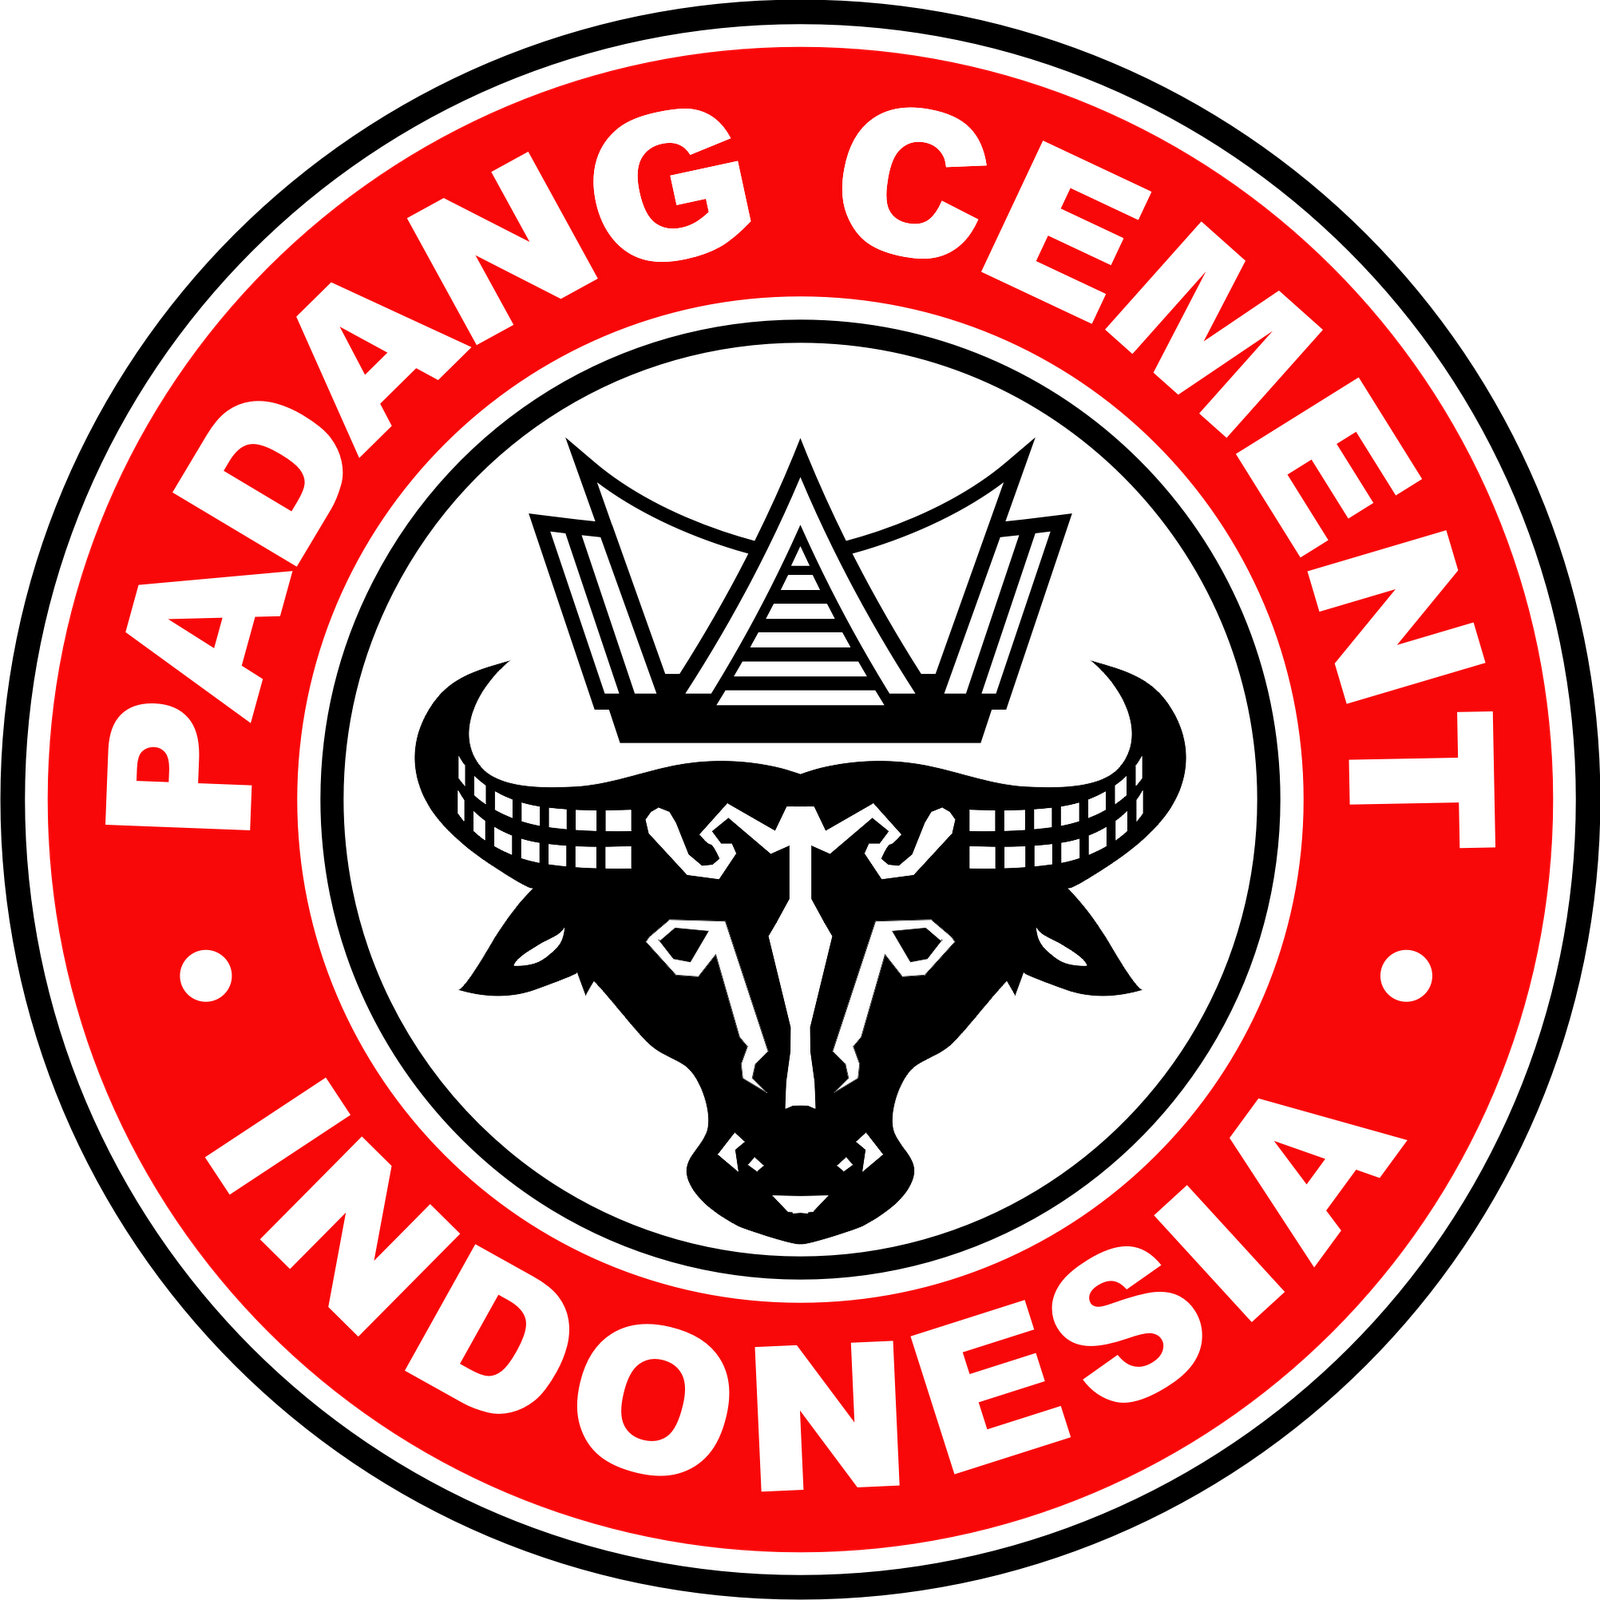 Padang Cement Indonesia